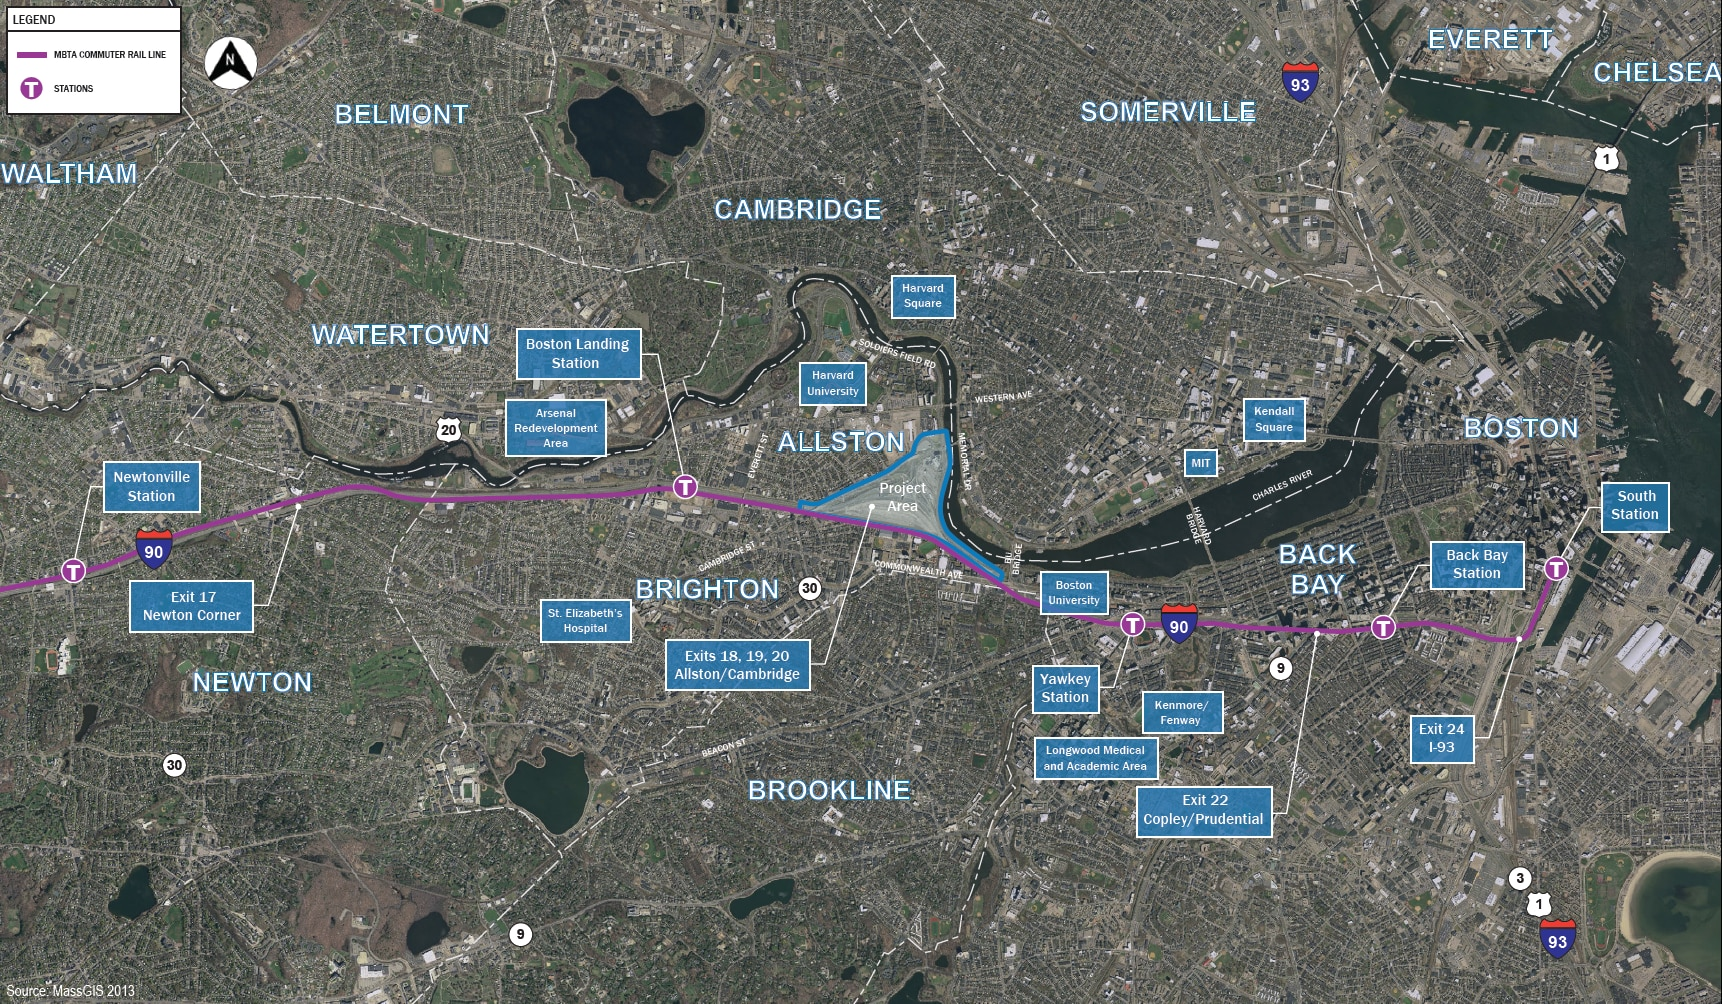 A map of the Boston area with the project area highlighted, and the Worcester/Framingham Commuter Rail Line labeled.